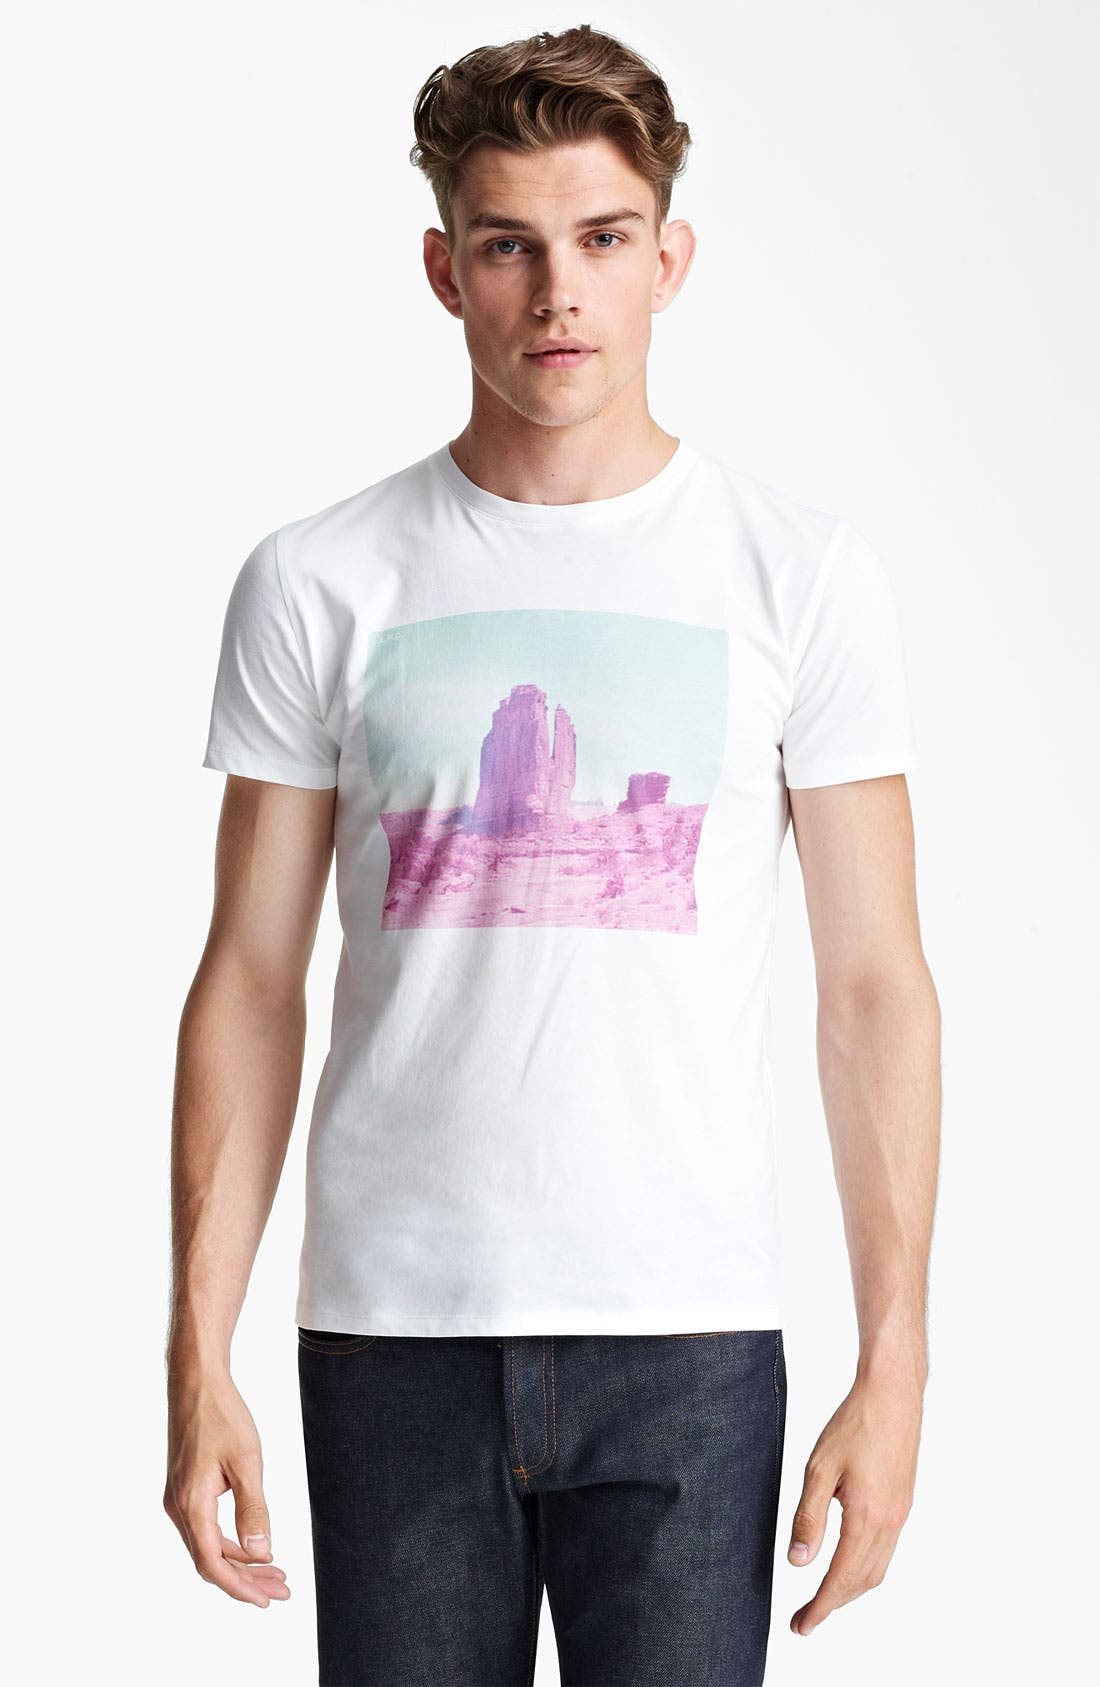 Alternate Image 1 Selected - A.P.C. 'Rock Formation' Print T-Shirt